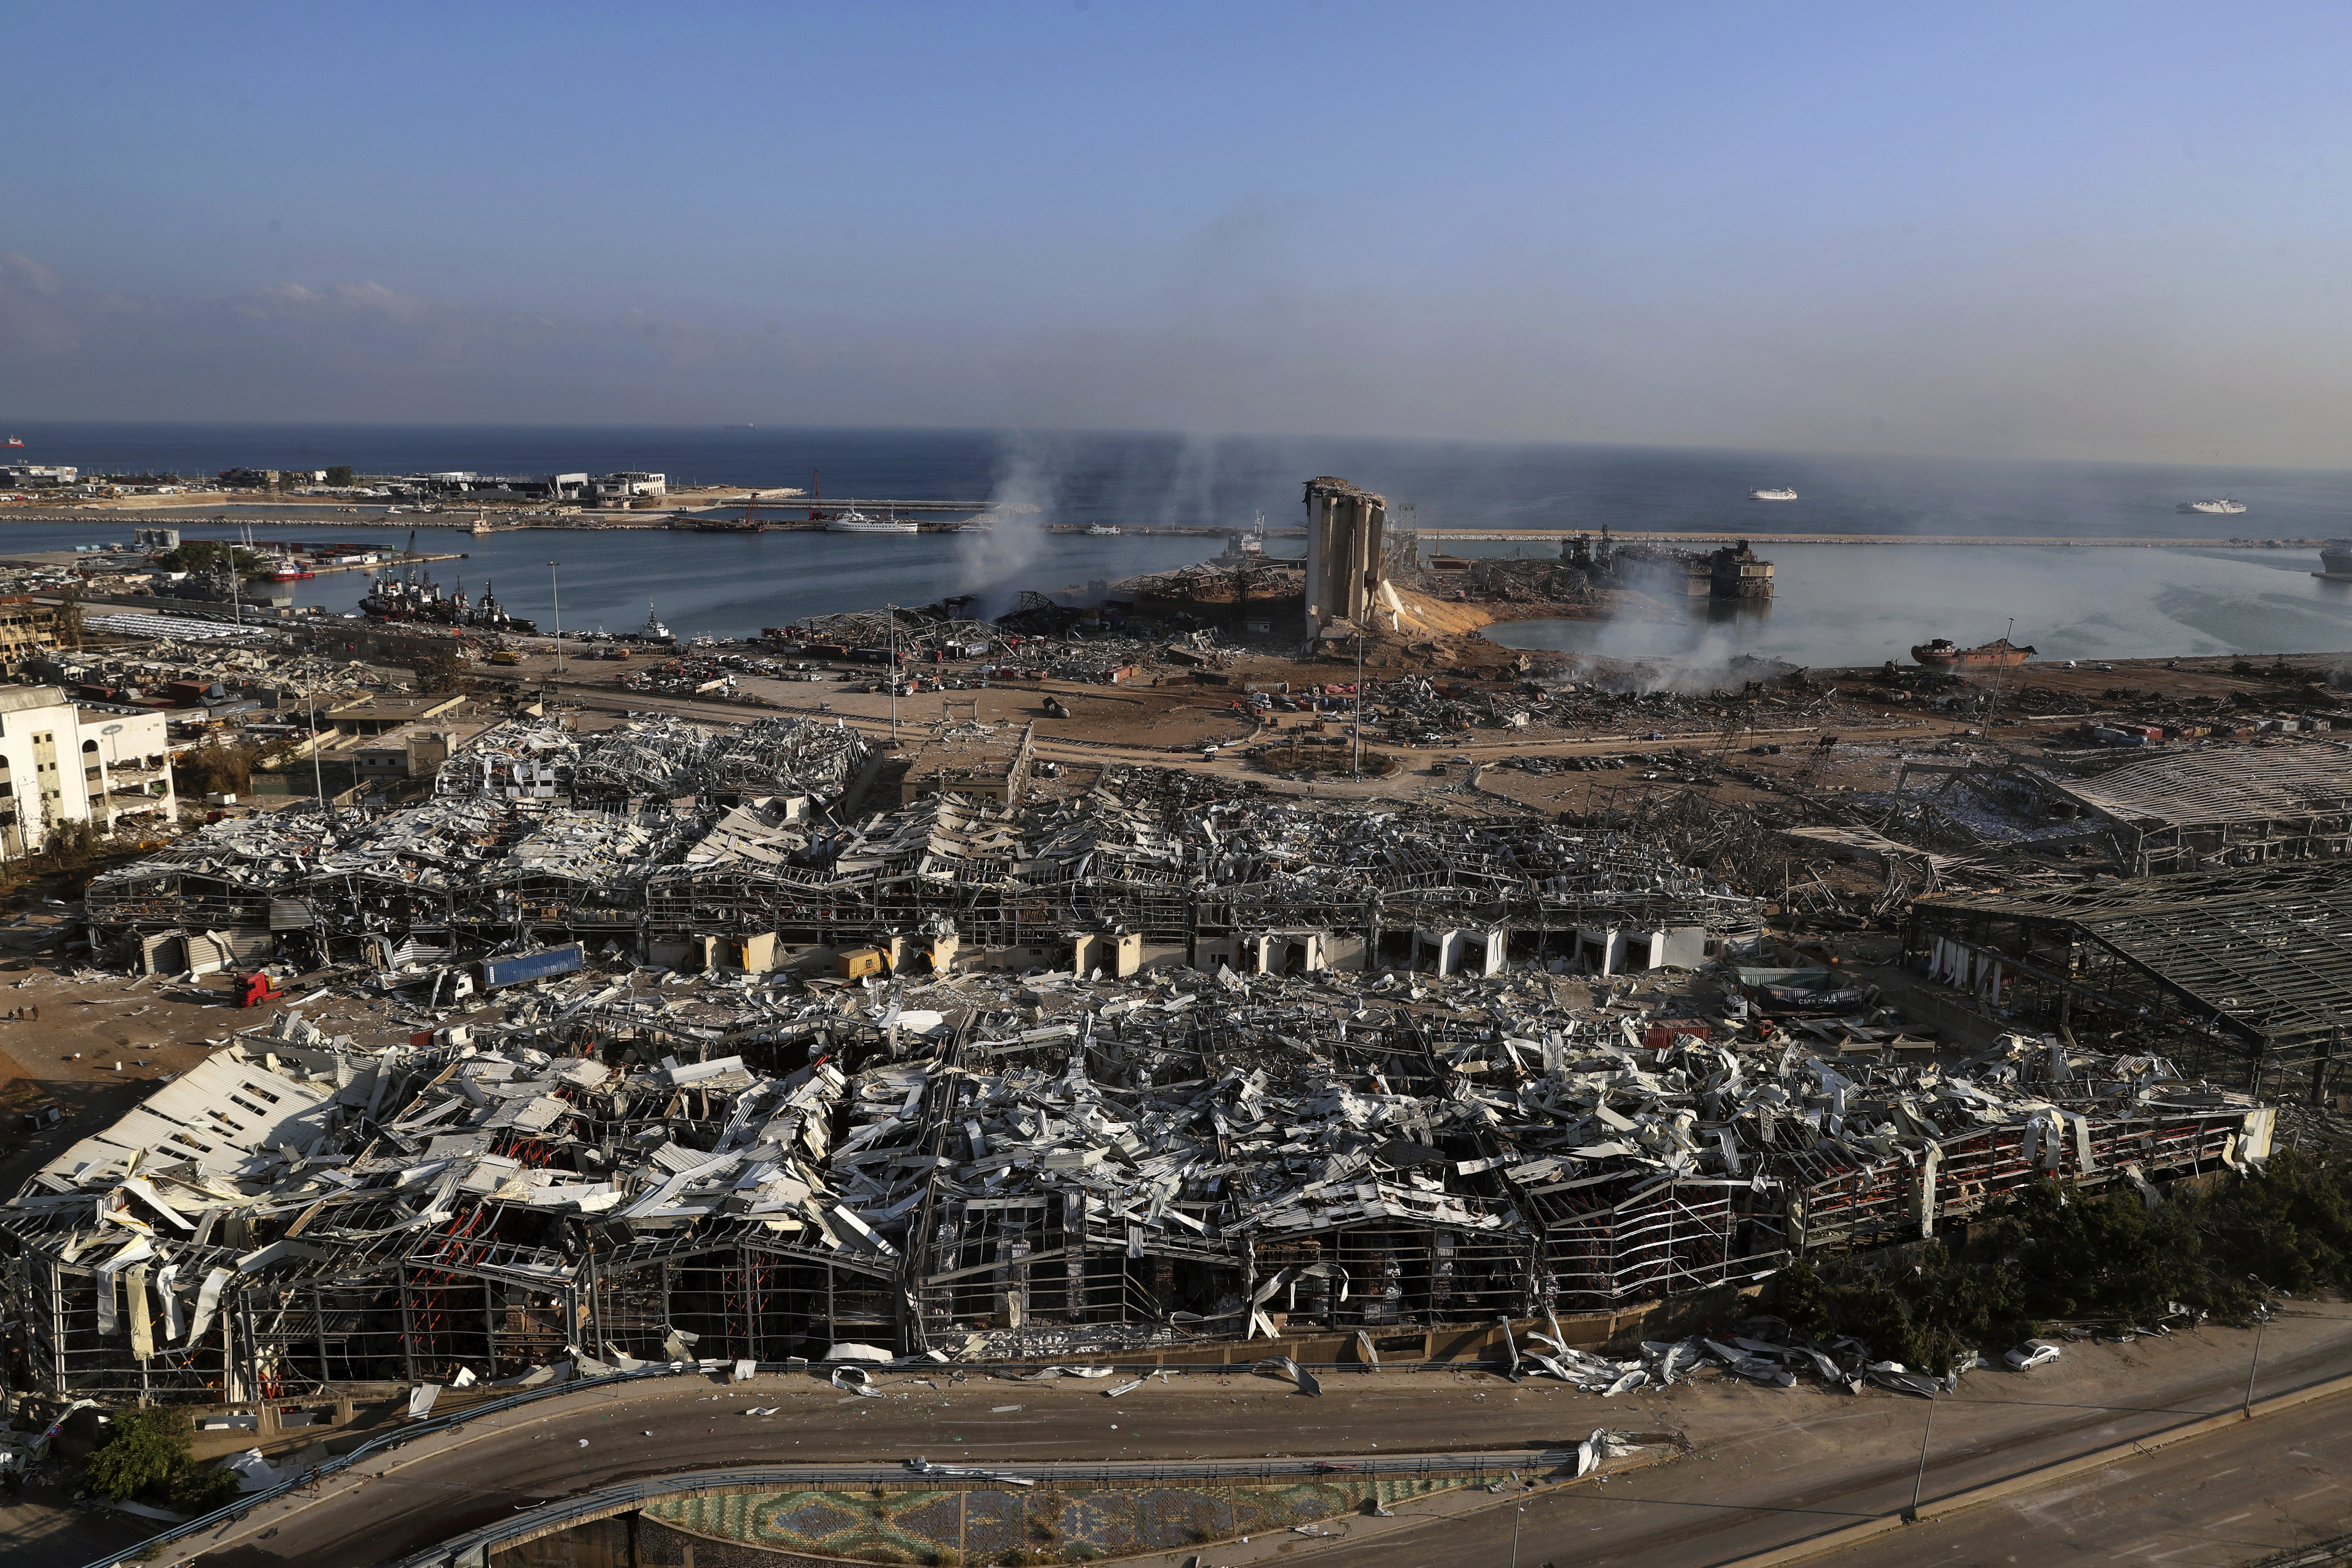 The aftermath of the explosion is pictured on August 5.